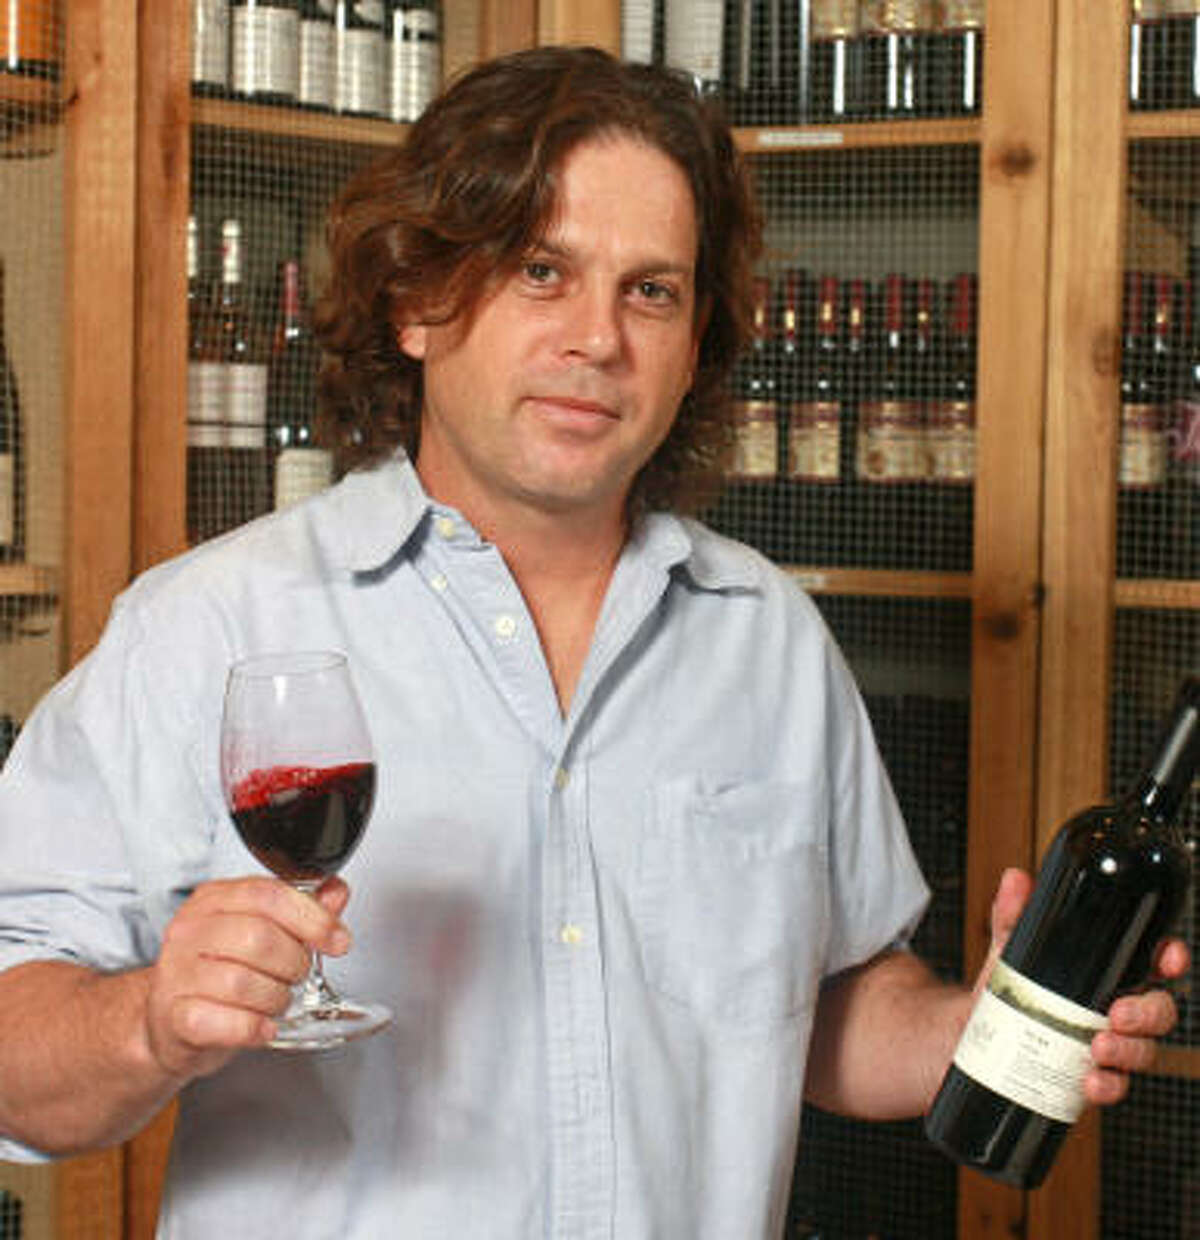 Israel is hindered by the poor - if outdated - reputation of kosher wines but winemakers like Micha Vaadia are turning out some truly remarkable Israeli wines.